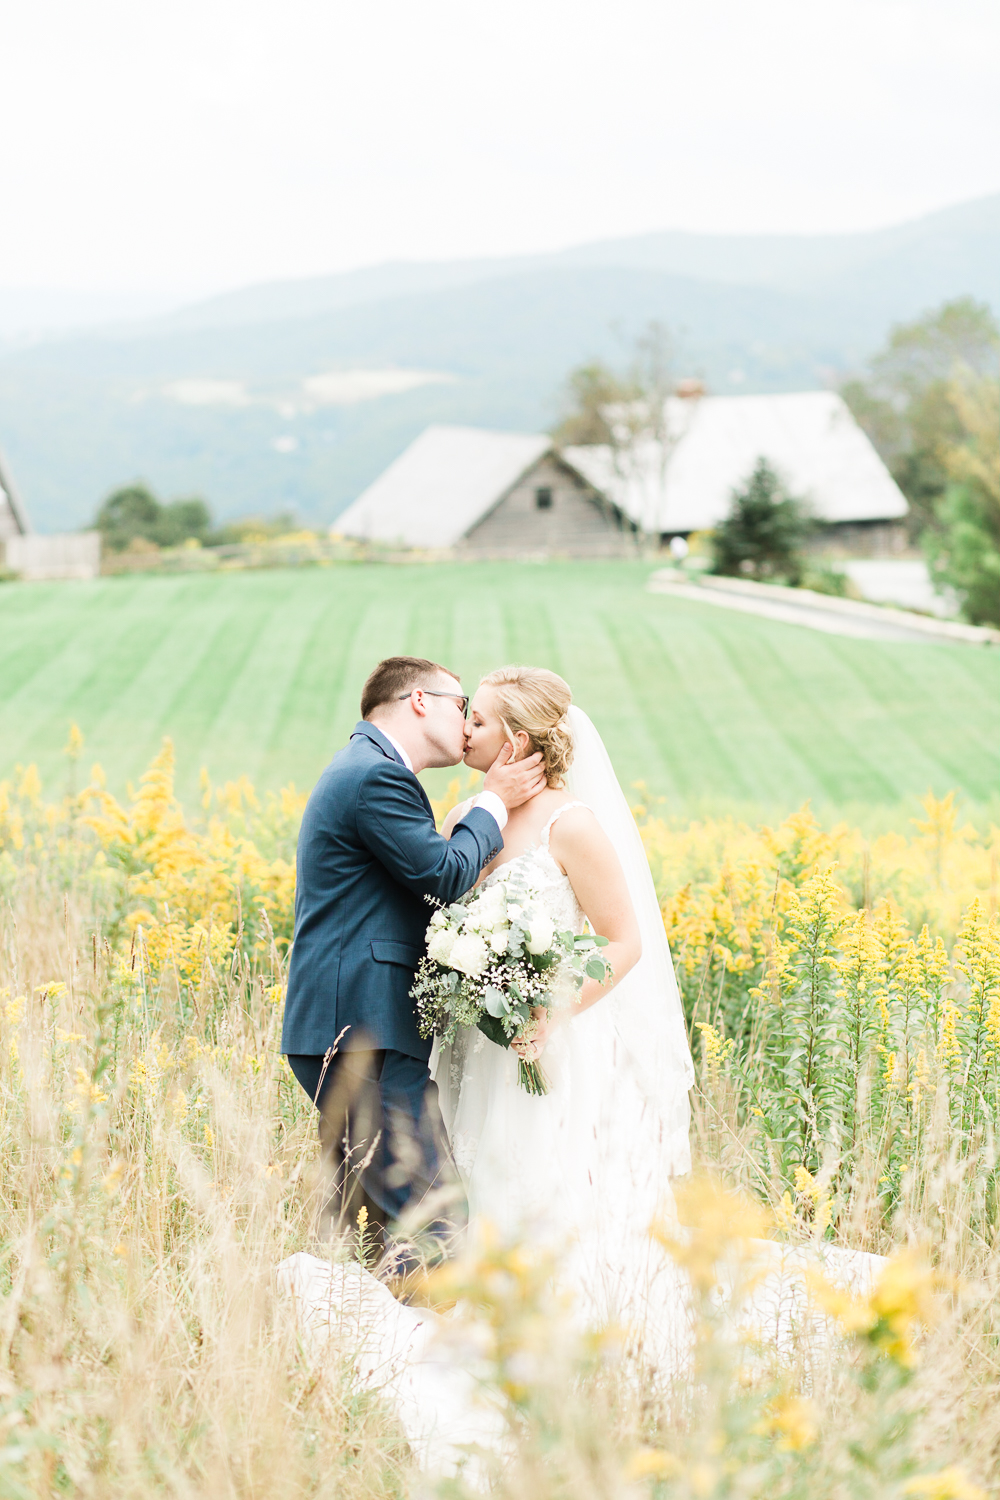 2:45pm - Bride and Groom Portraits